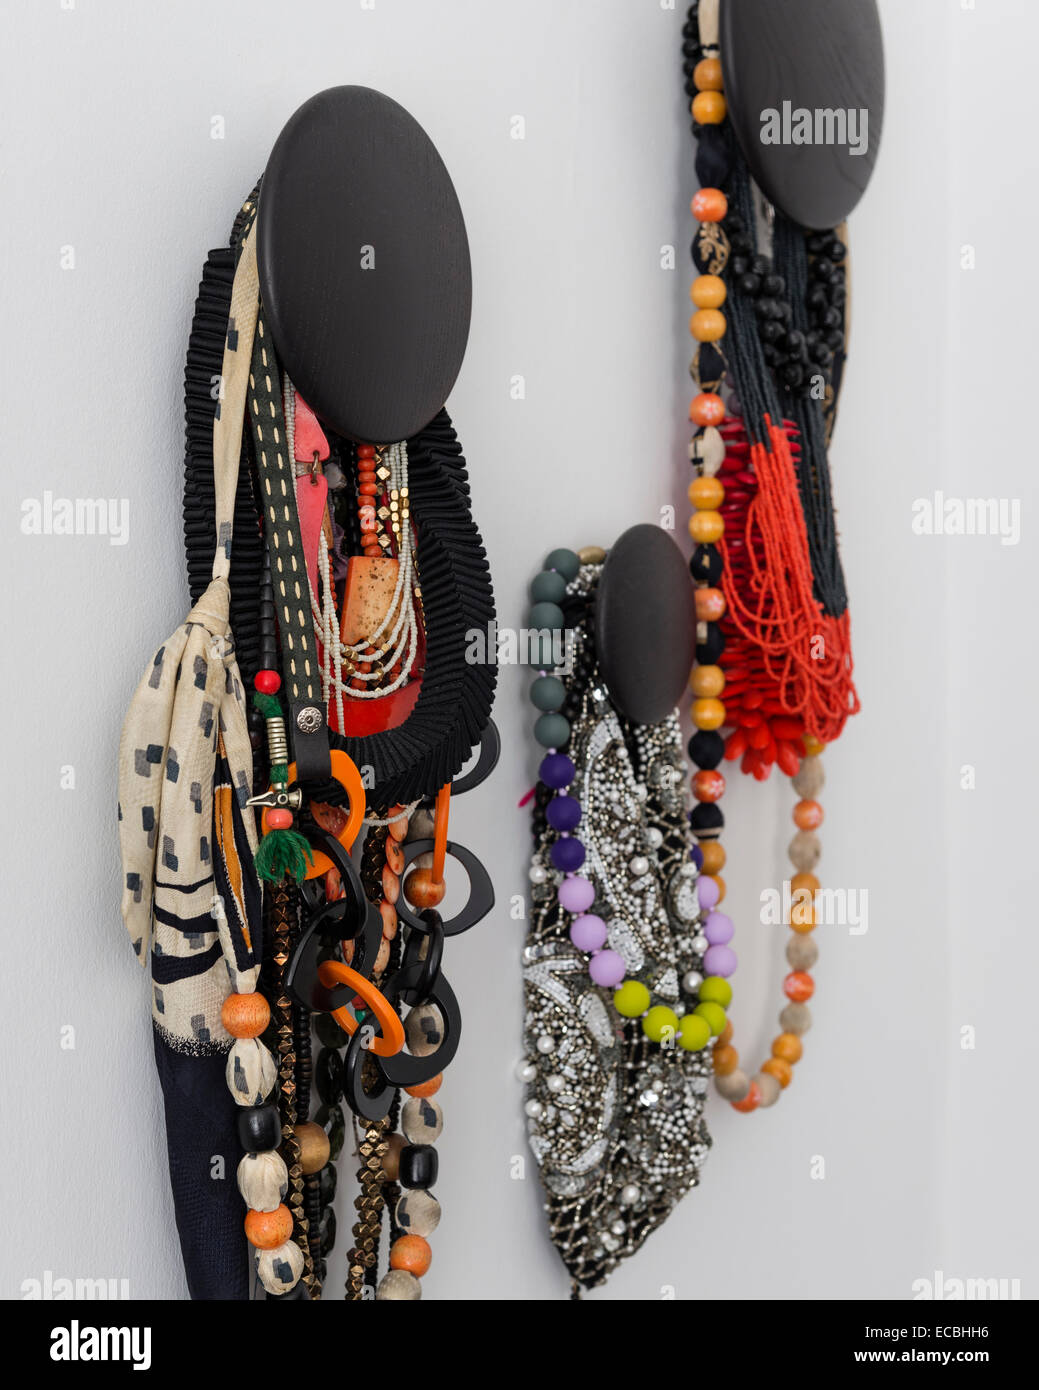 Beaded necklaces hung from the wall - Stock Image